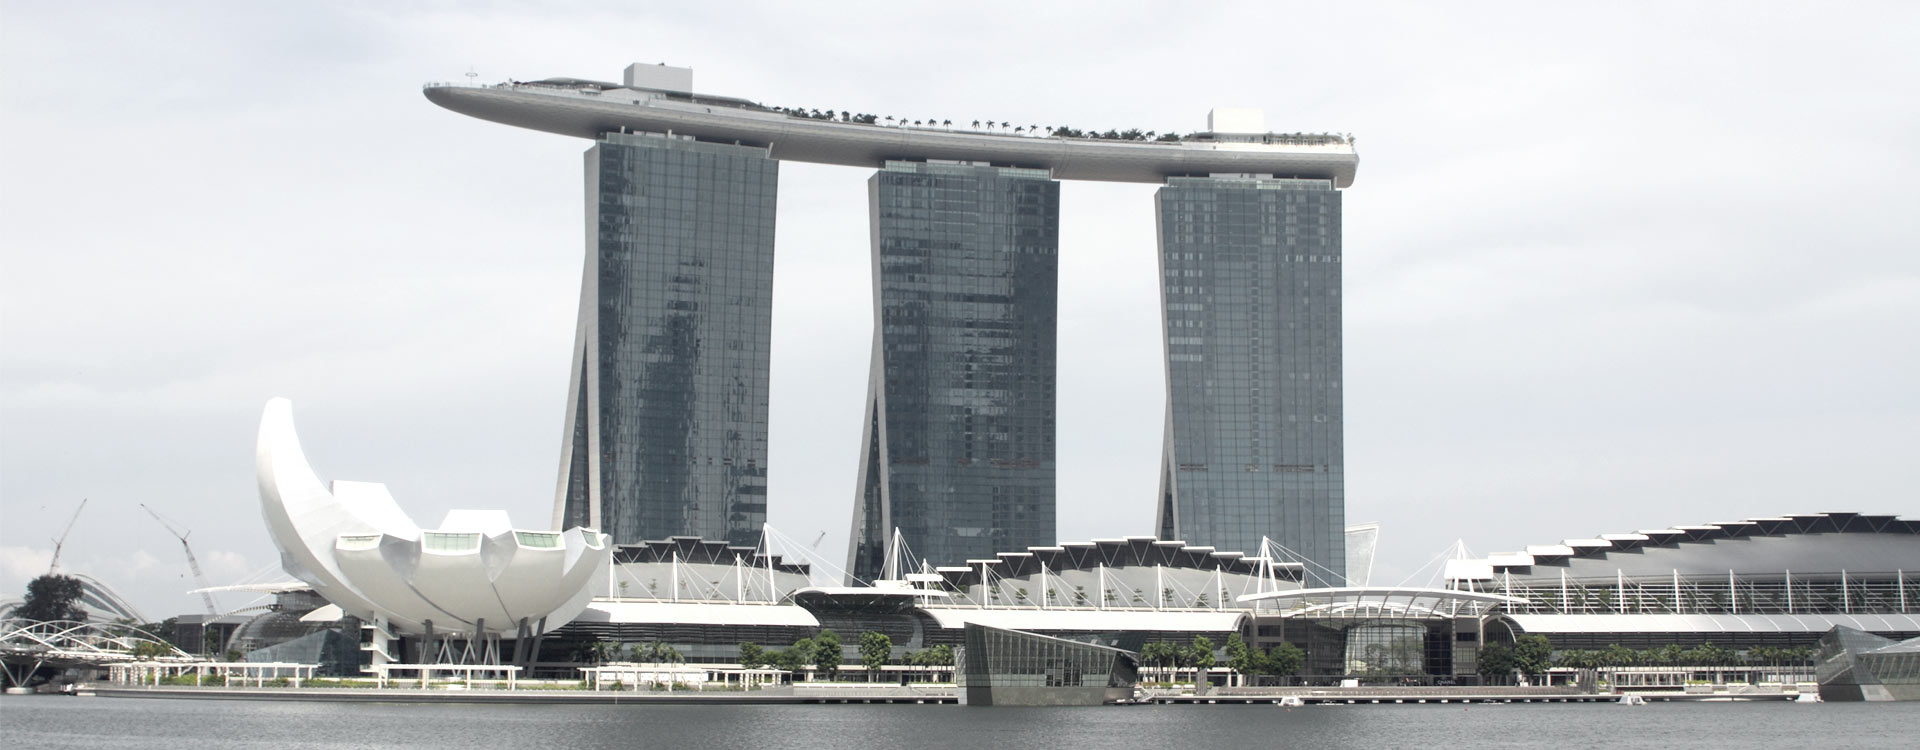 Resort Marina Bay Sands en Singapur